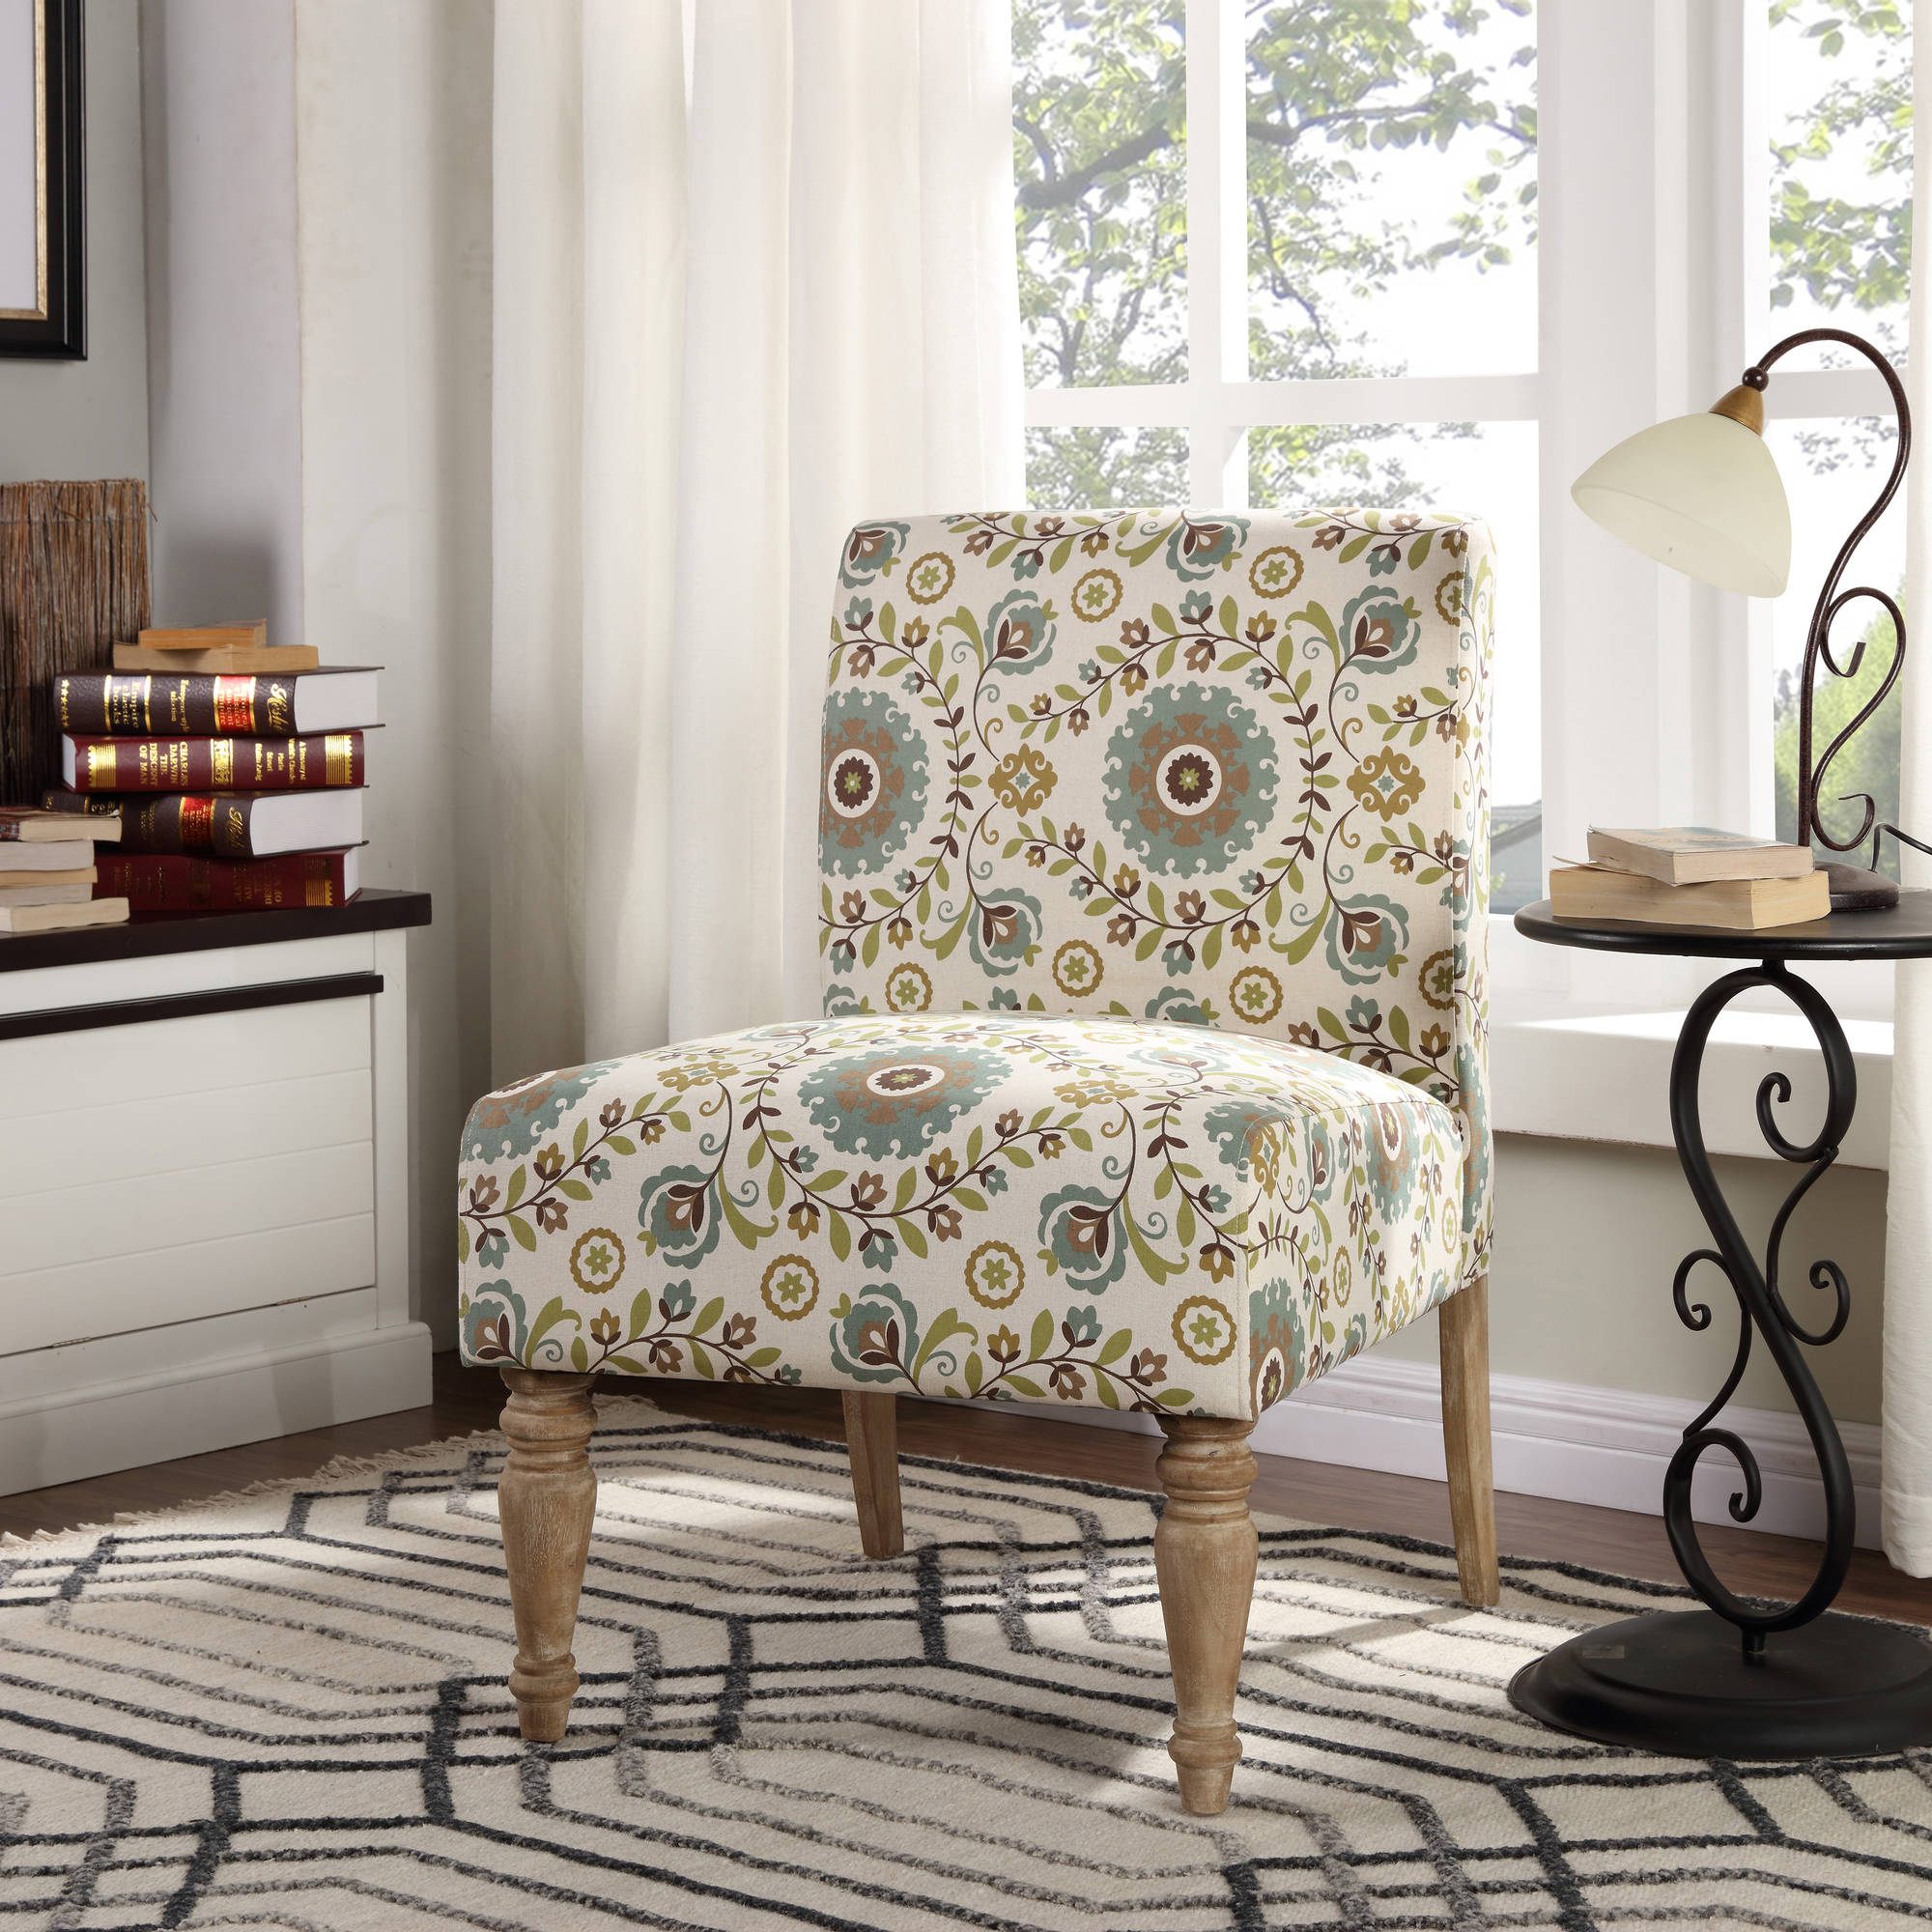 Marvelous Better Homes Gardens Paisley Slipper Chair Multiple Colors Walmart Com Ibusinesslaw Wood Chair Design Ideas Ibusinesslaworg